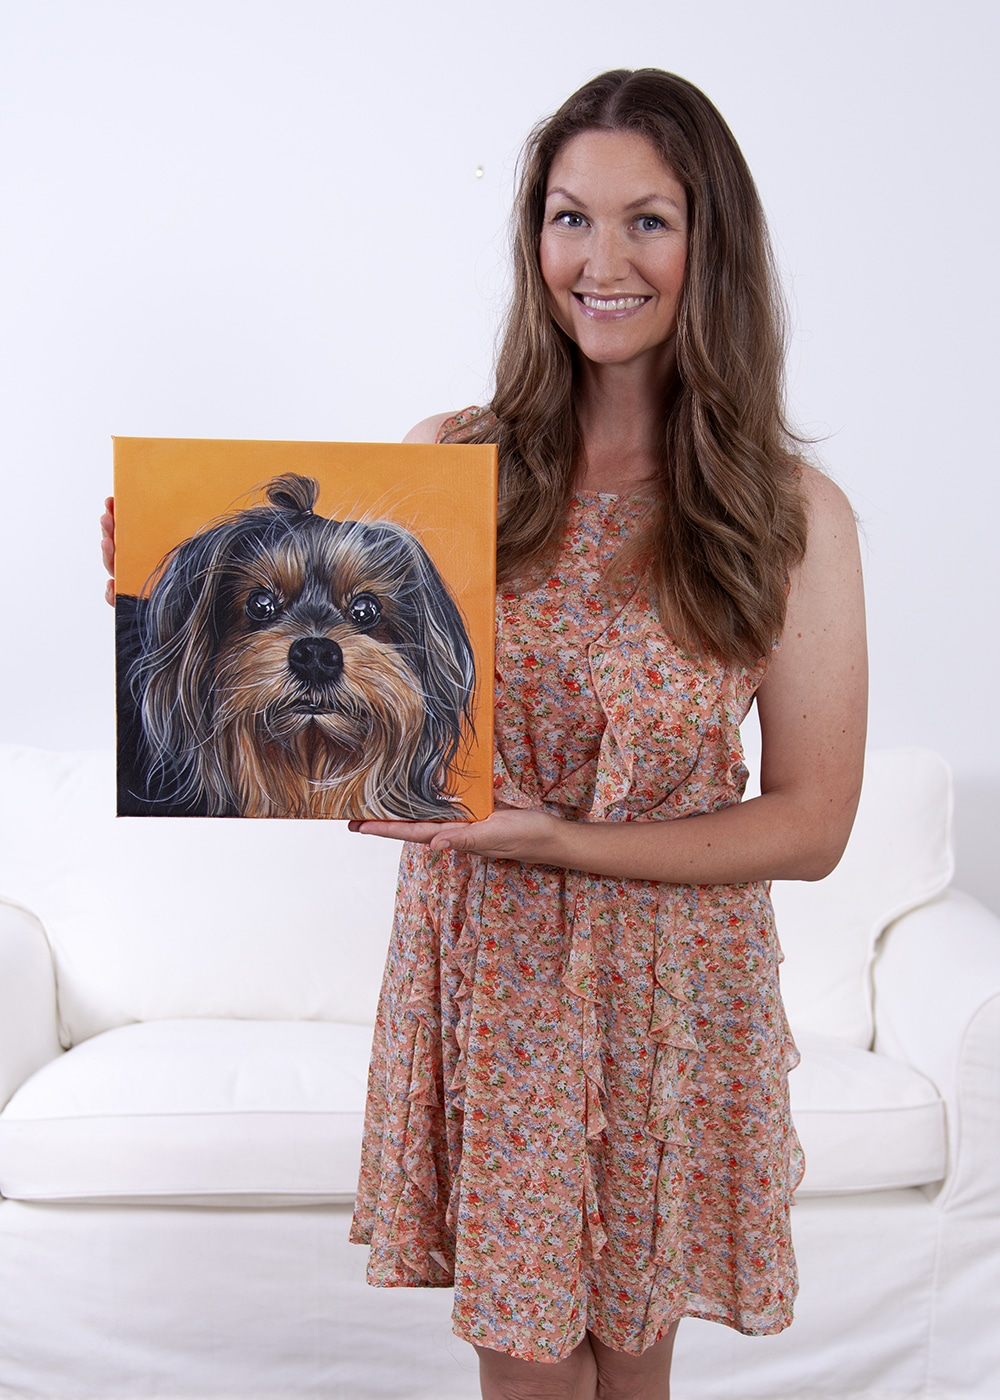 Fine arts painter Erica Eriksdotter holds a custom dog portrait of a yorkshire terrier